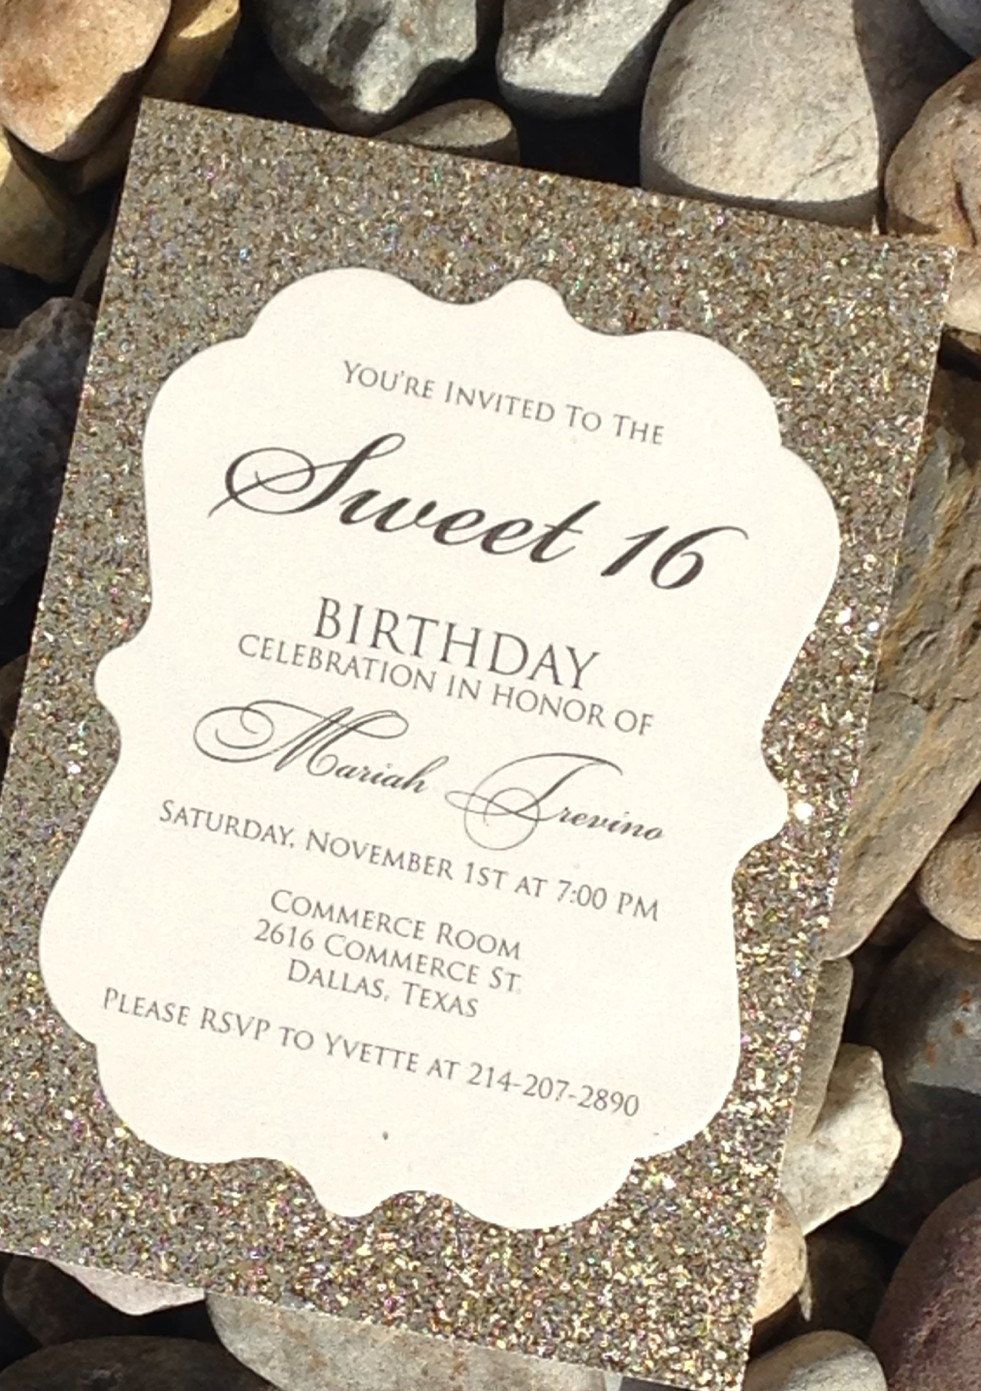 Pin by Cary Gonzalez on All natural products | Pinterest | Sweet 16 ...